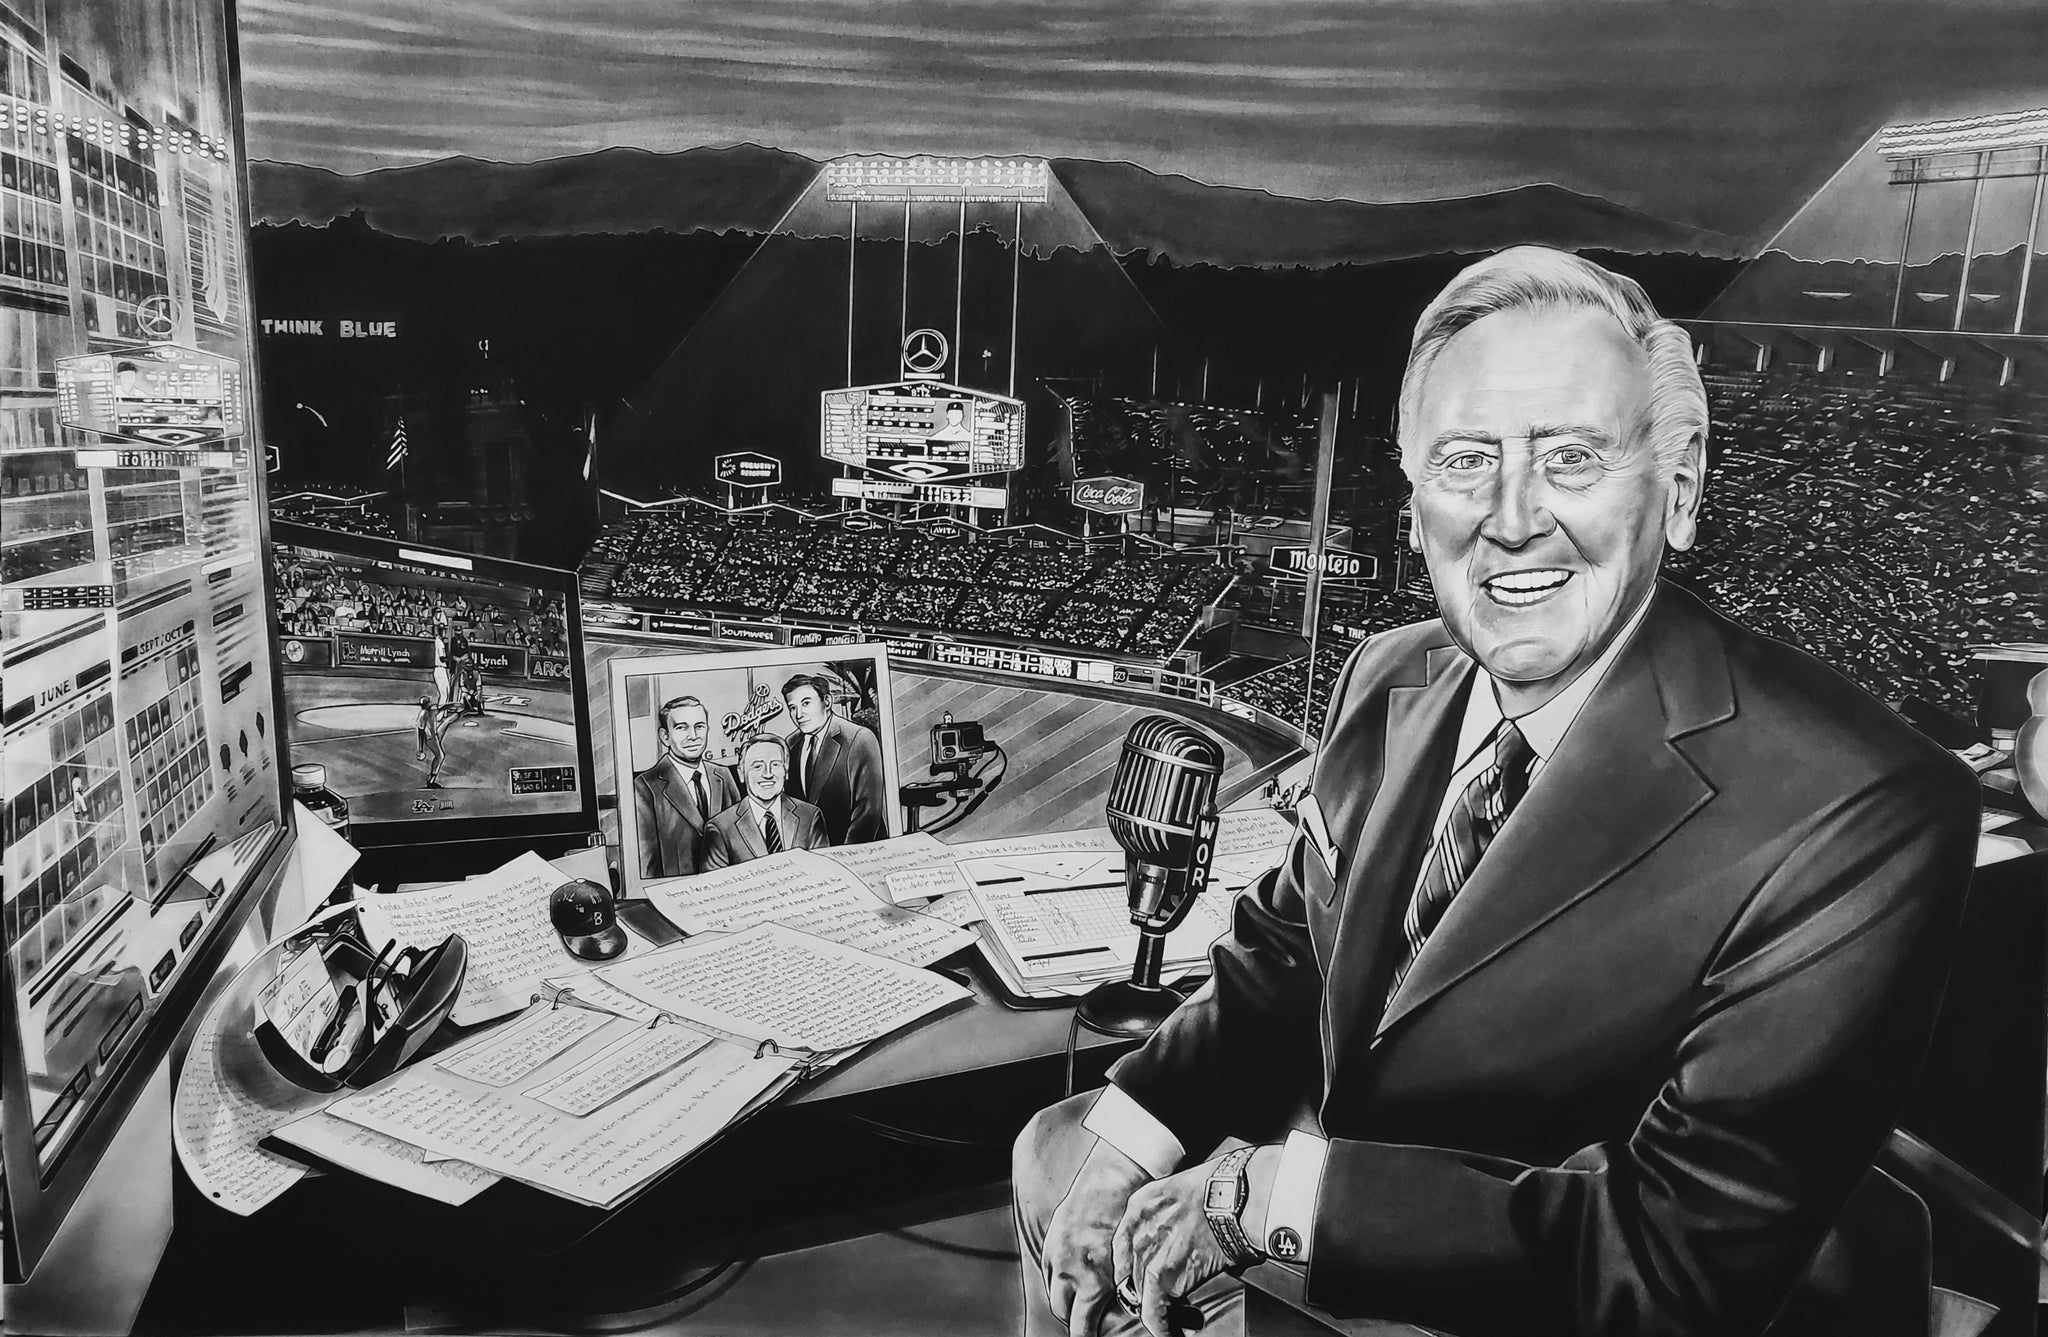 BROADCASTER: Vin Scully - Wood